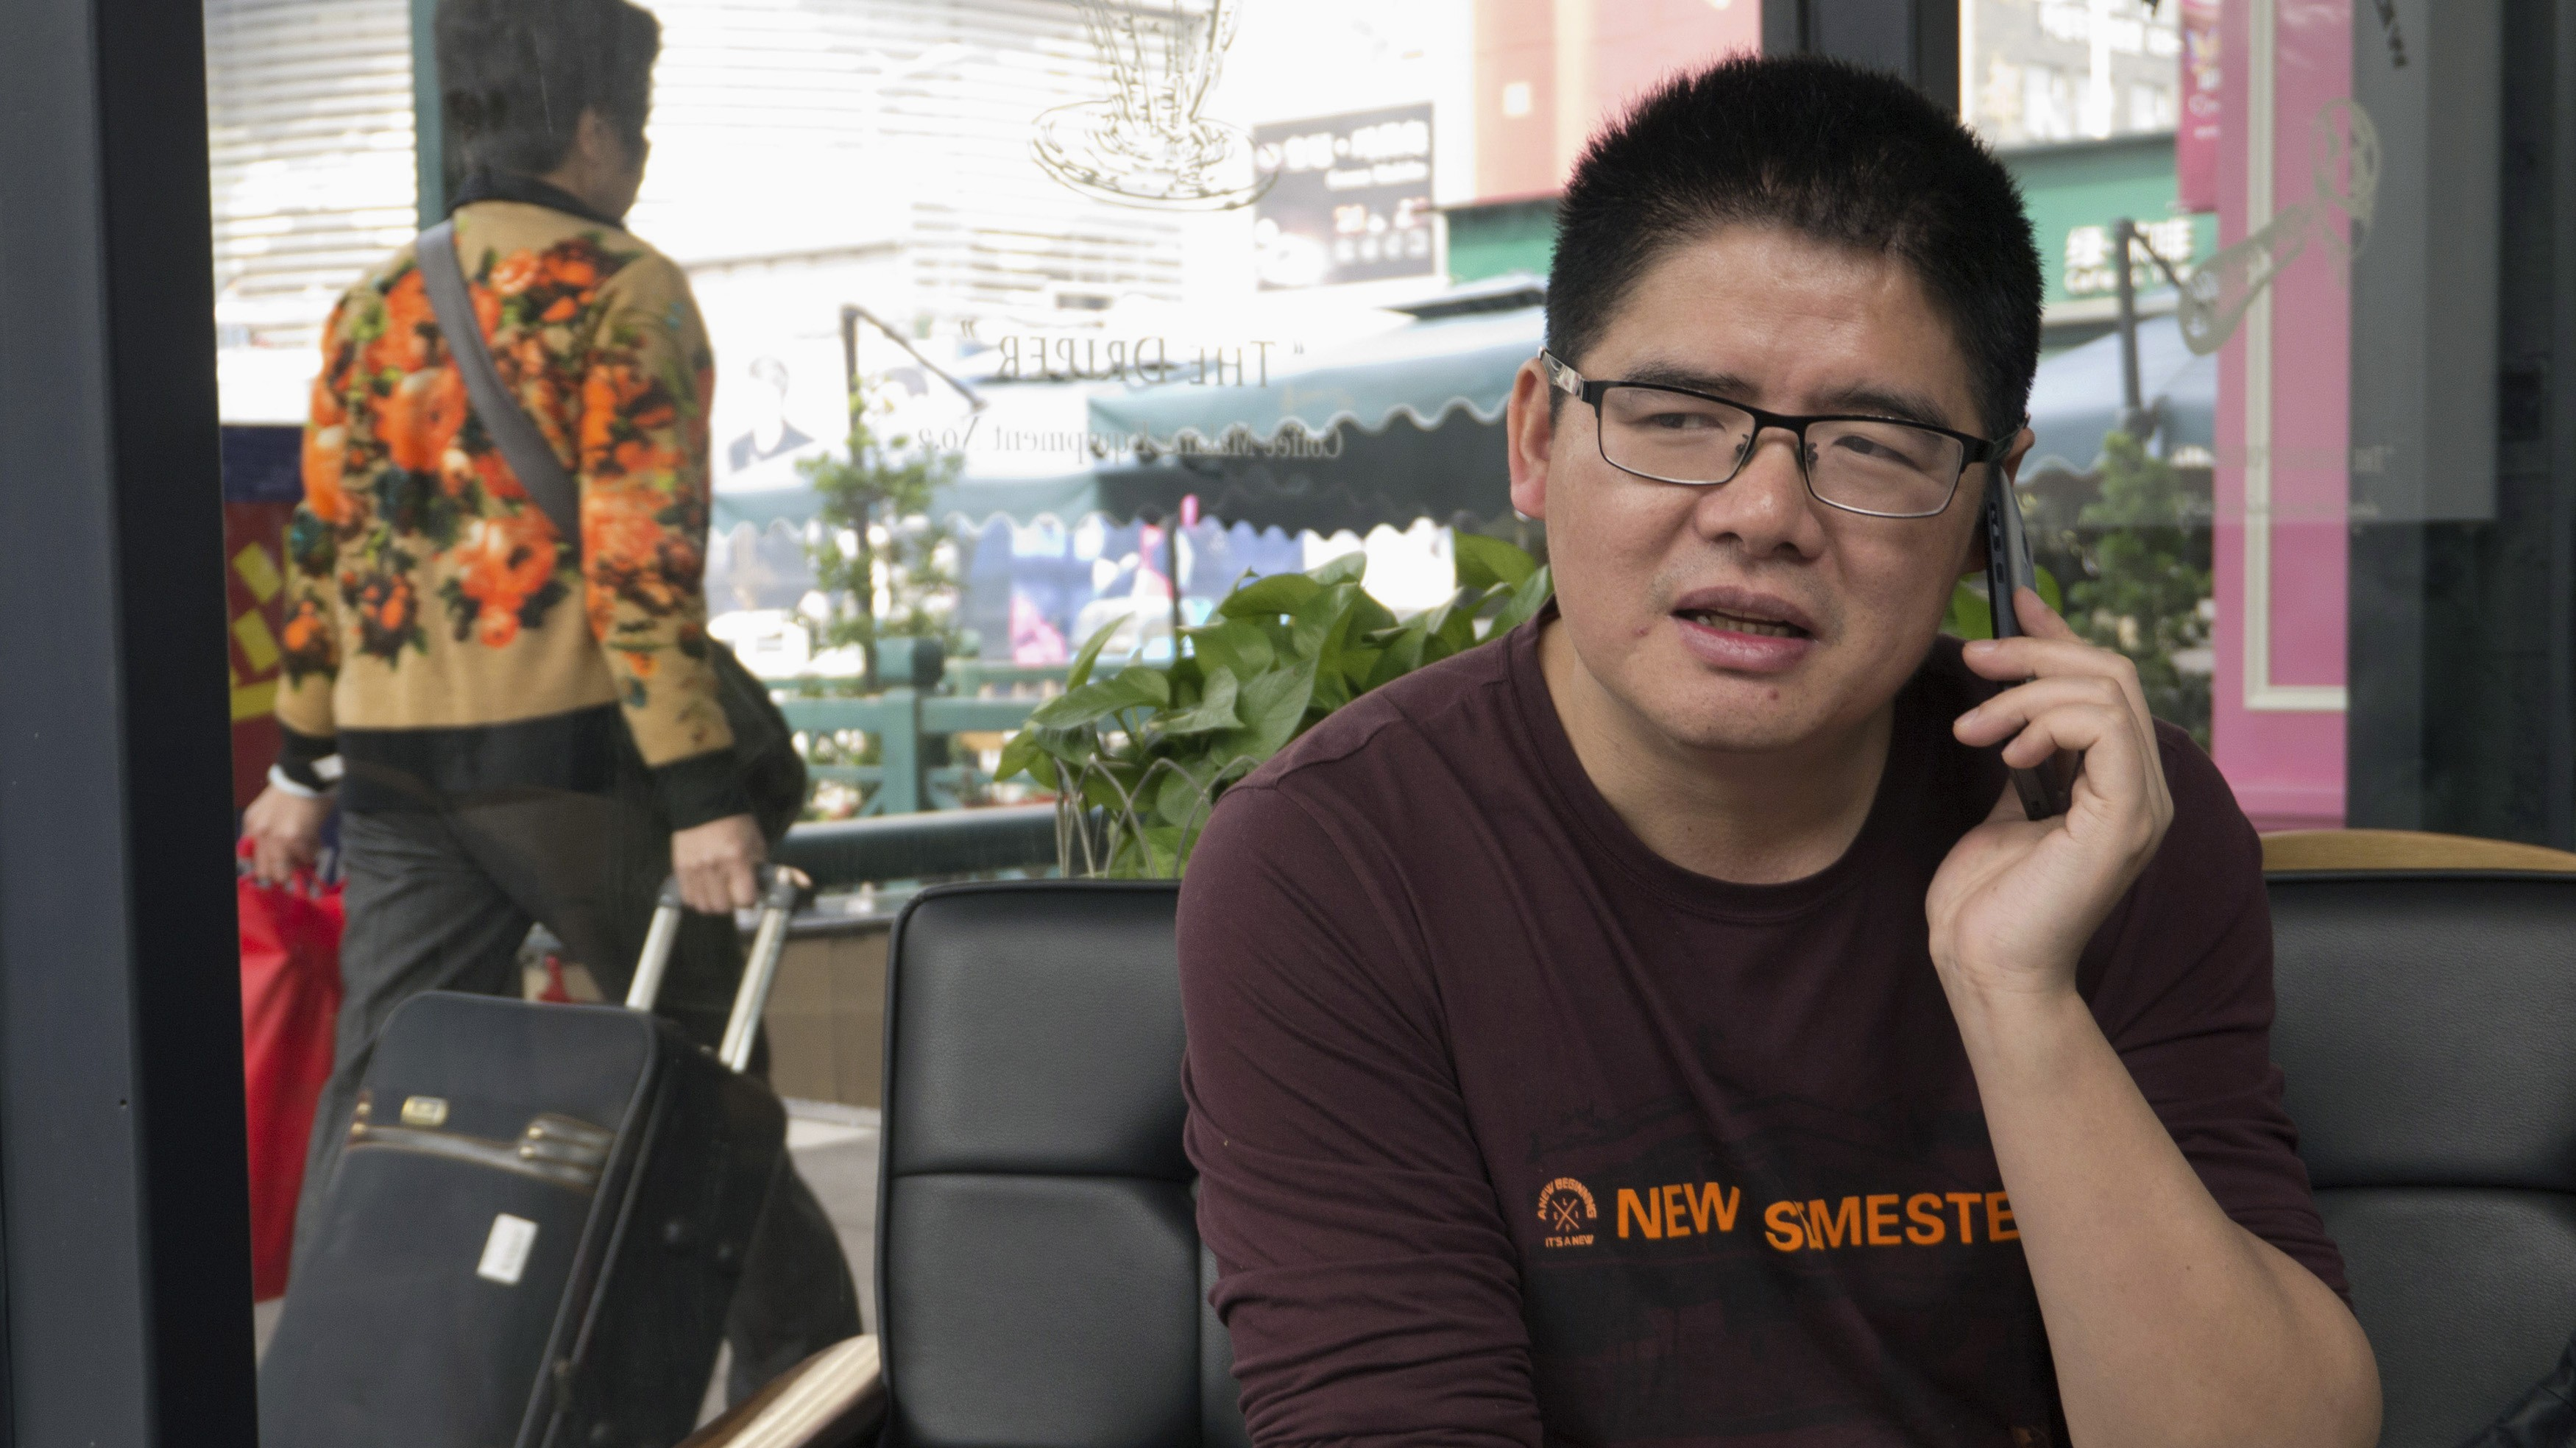 Zeng Feiyang, director of the Guangdong Panyu Migrant Workers Center, talks on his phone during an interview in Guangzhou